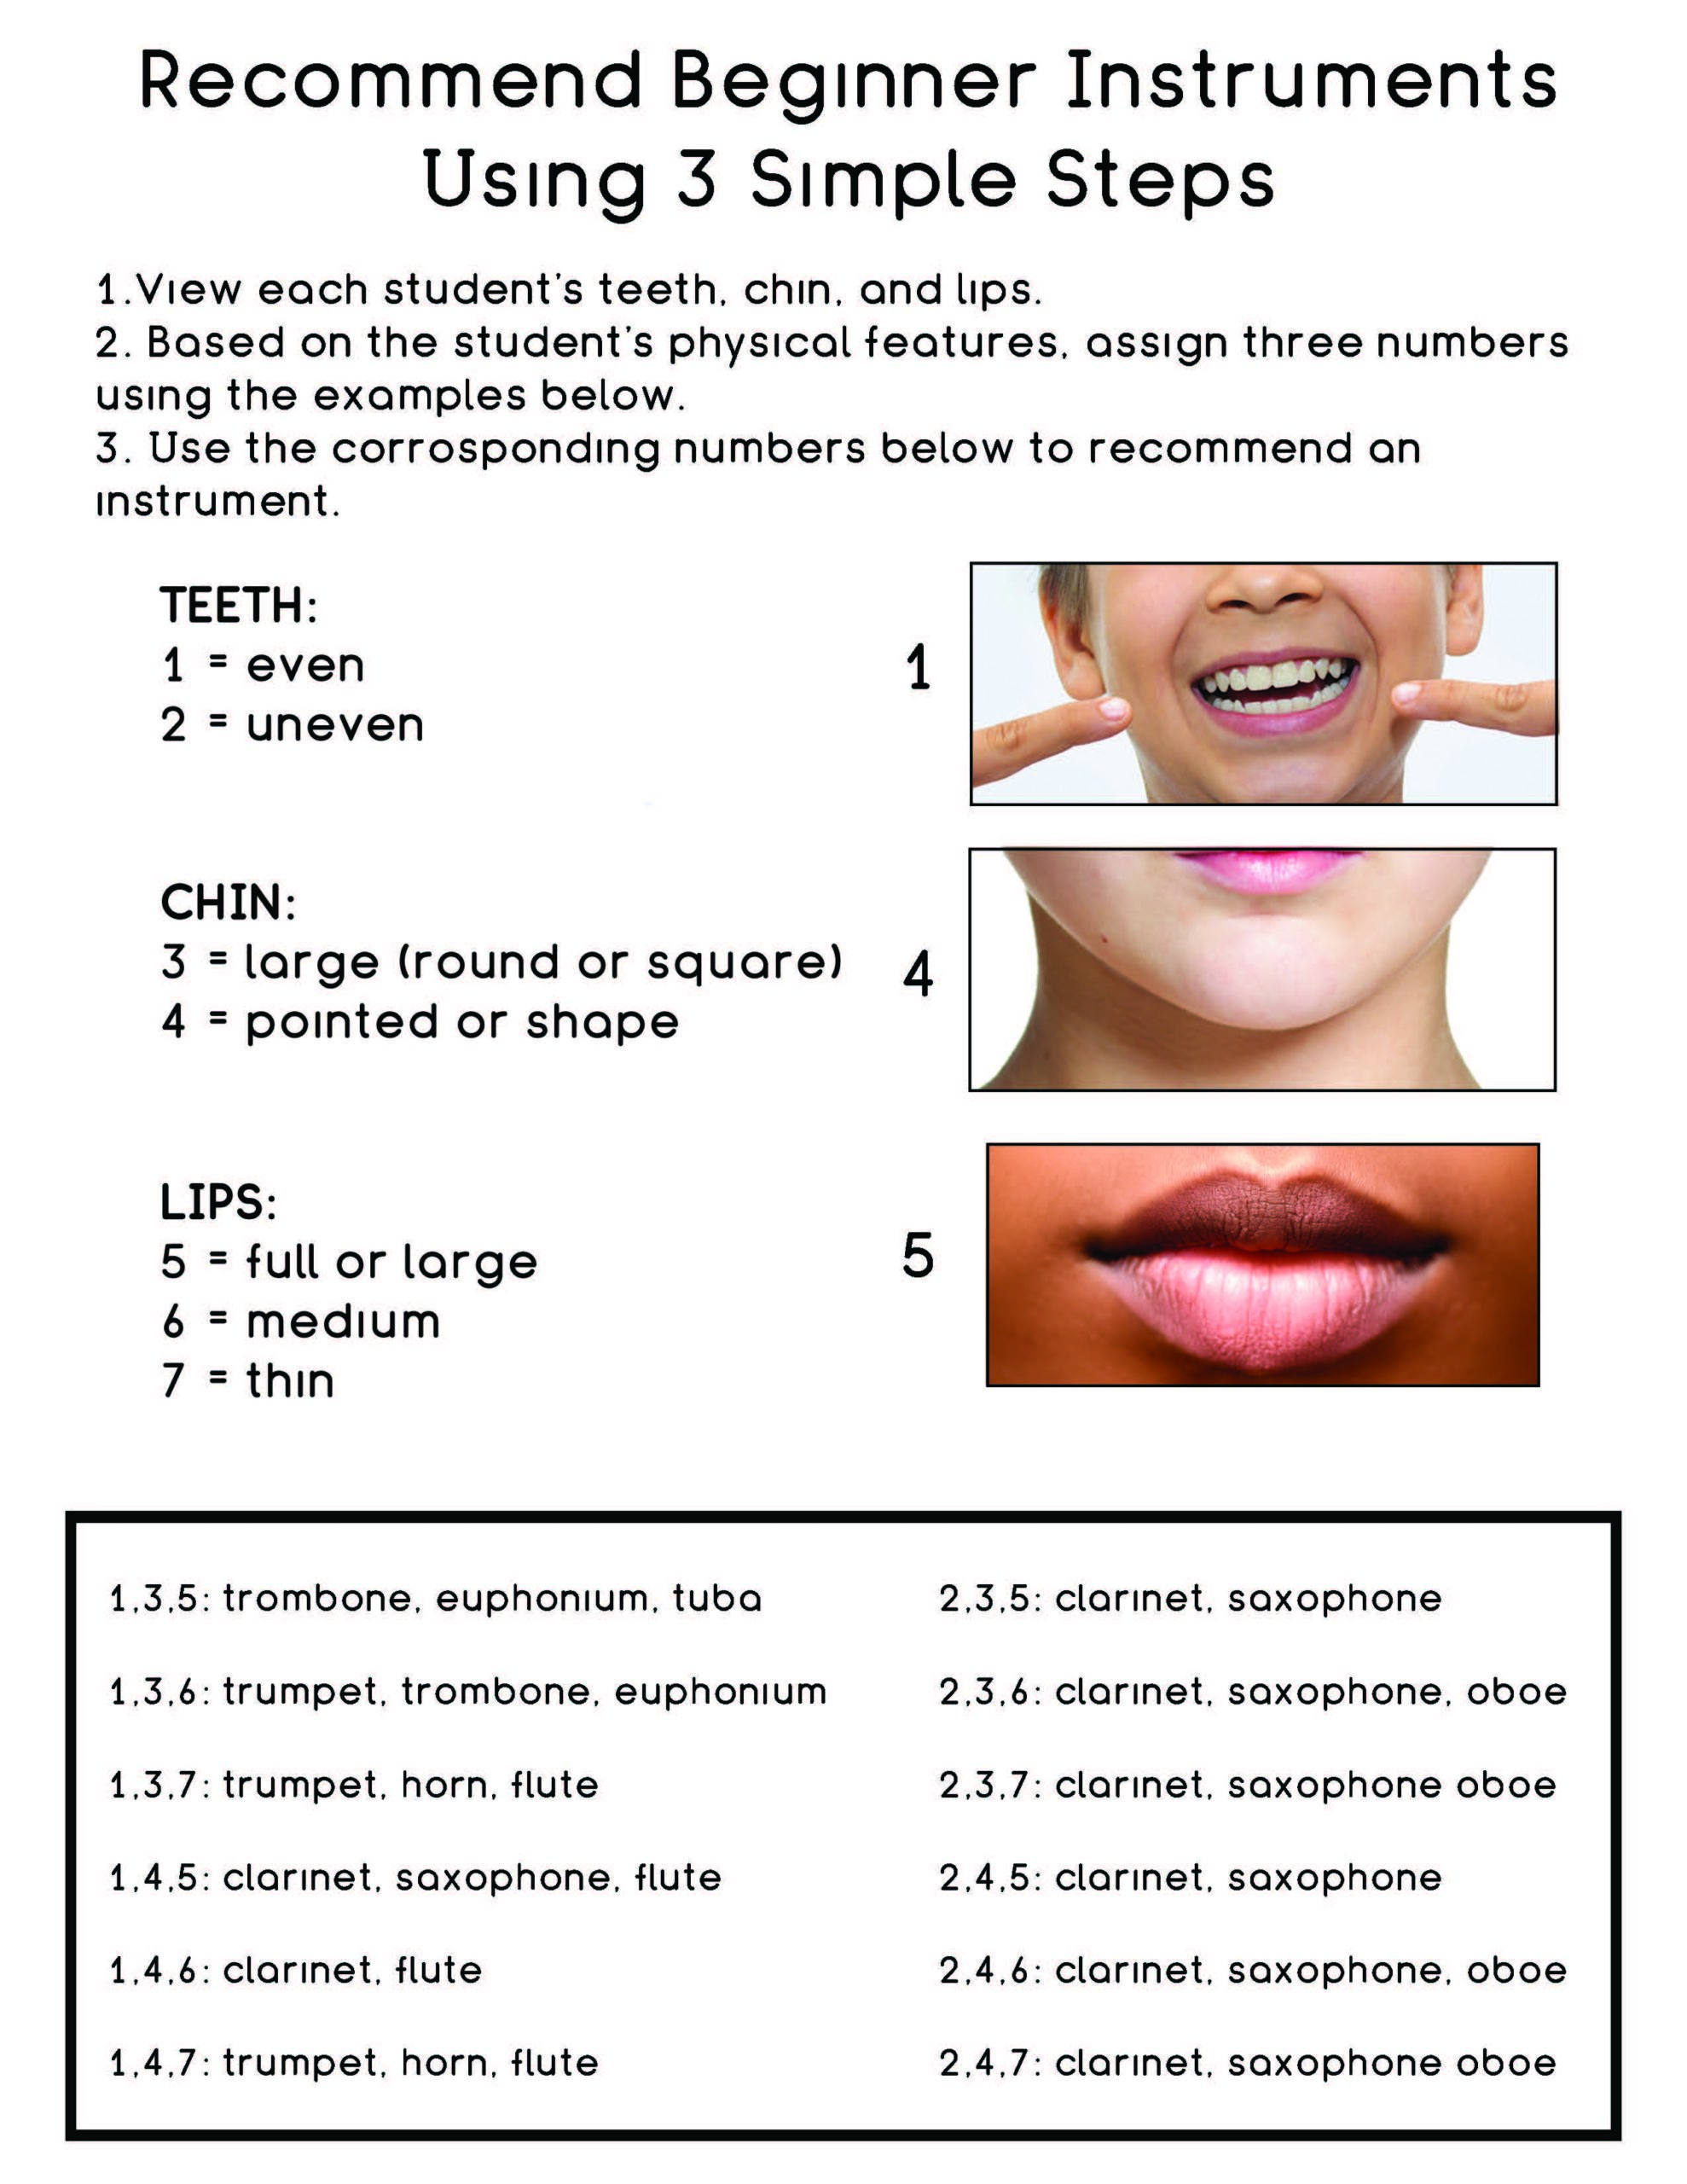 Chart shows facial characteristics best suited for specific instruments